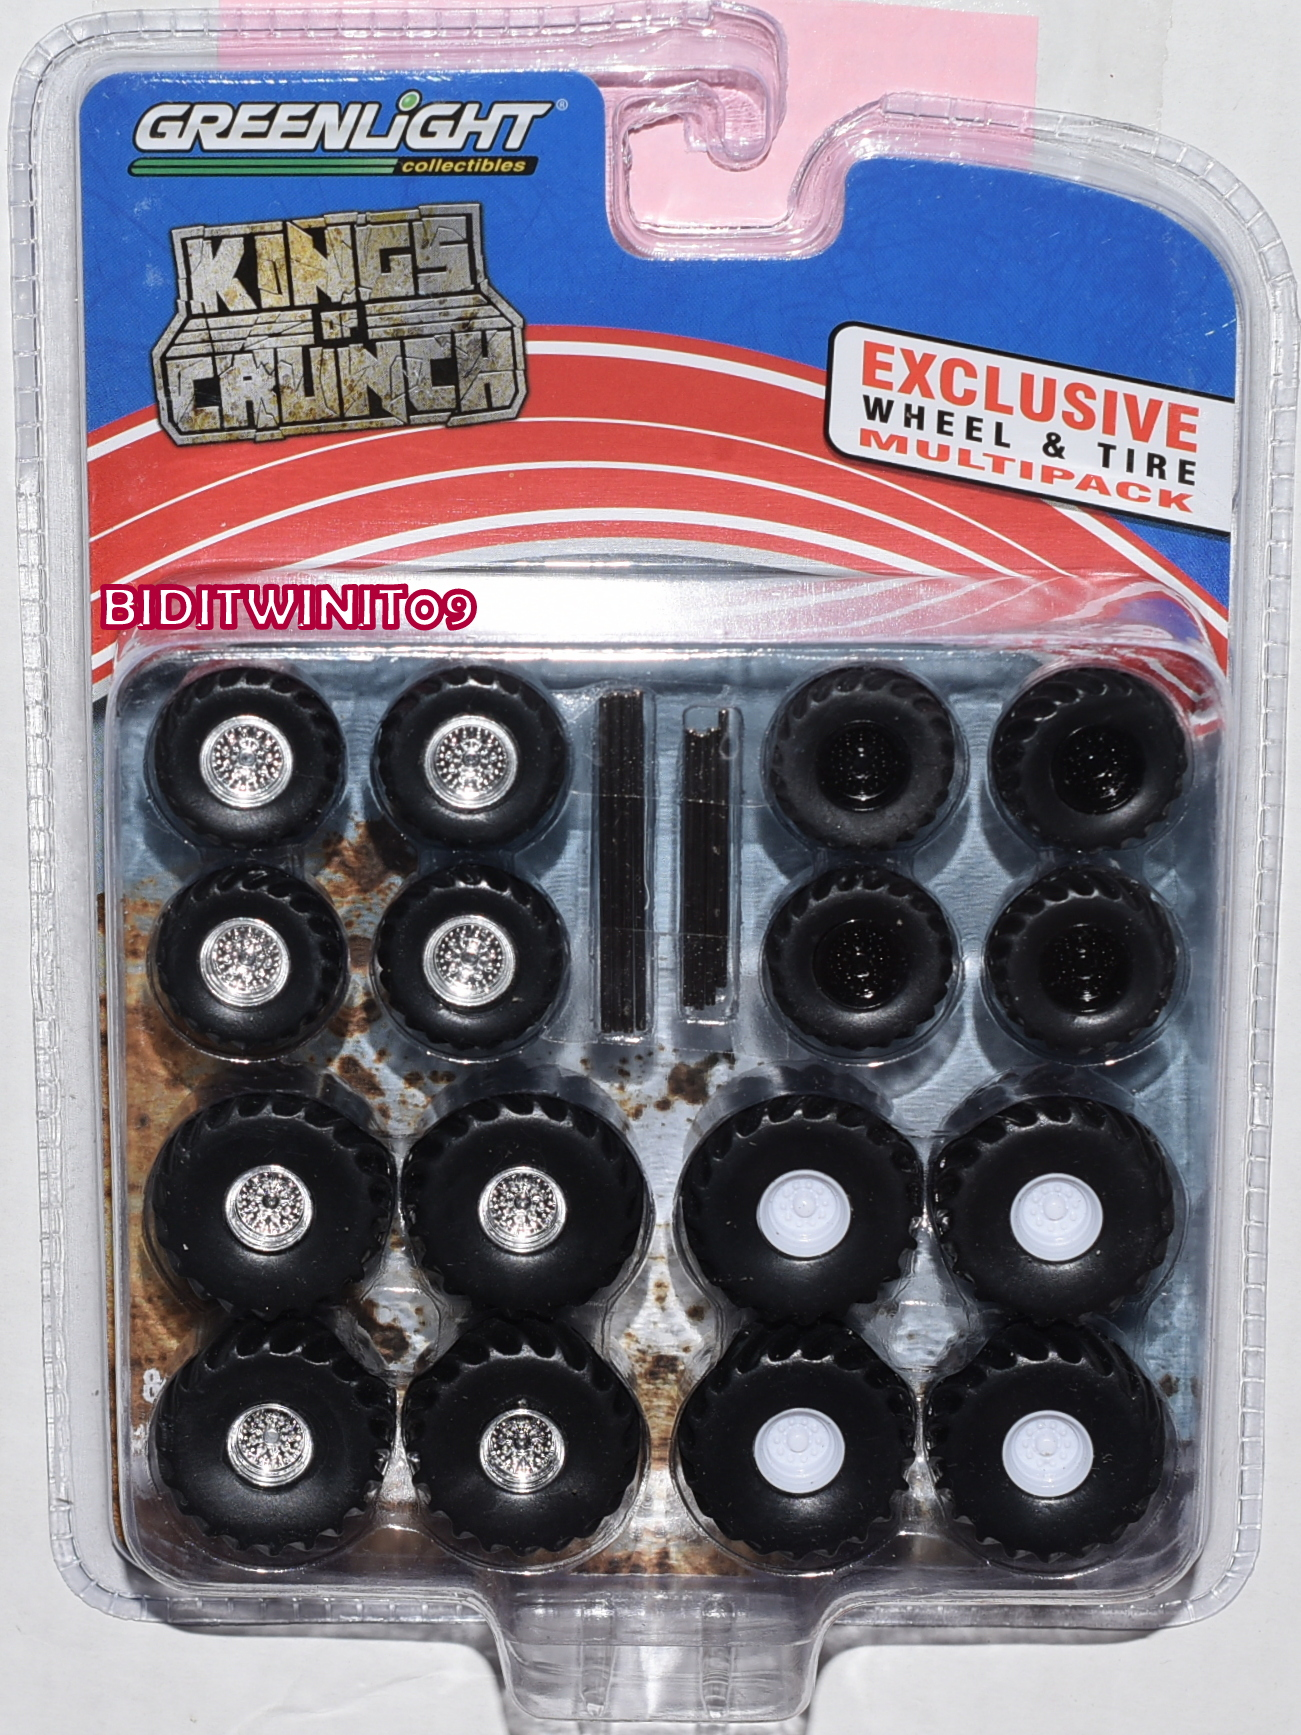 GREENLIGHT KINGS OF CRUNCH WHEEL & TIRE PACK - 16 WHEELS, 16 TIRES